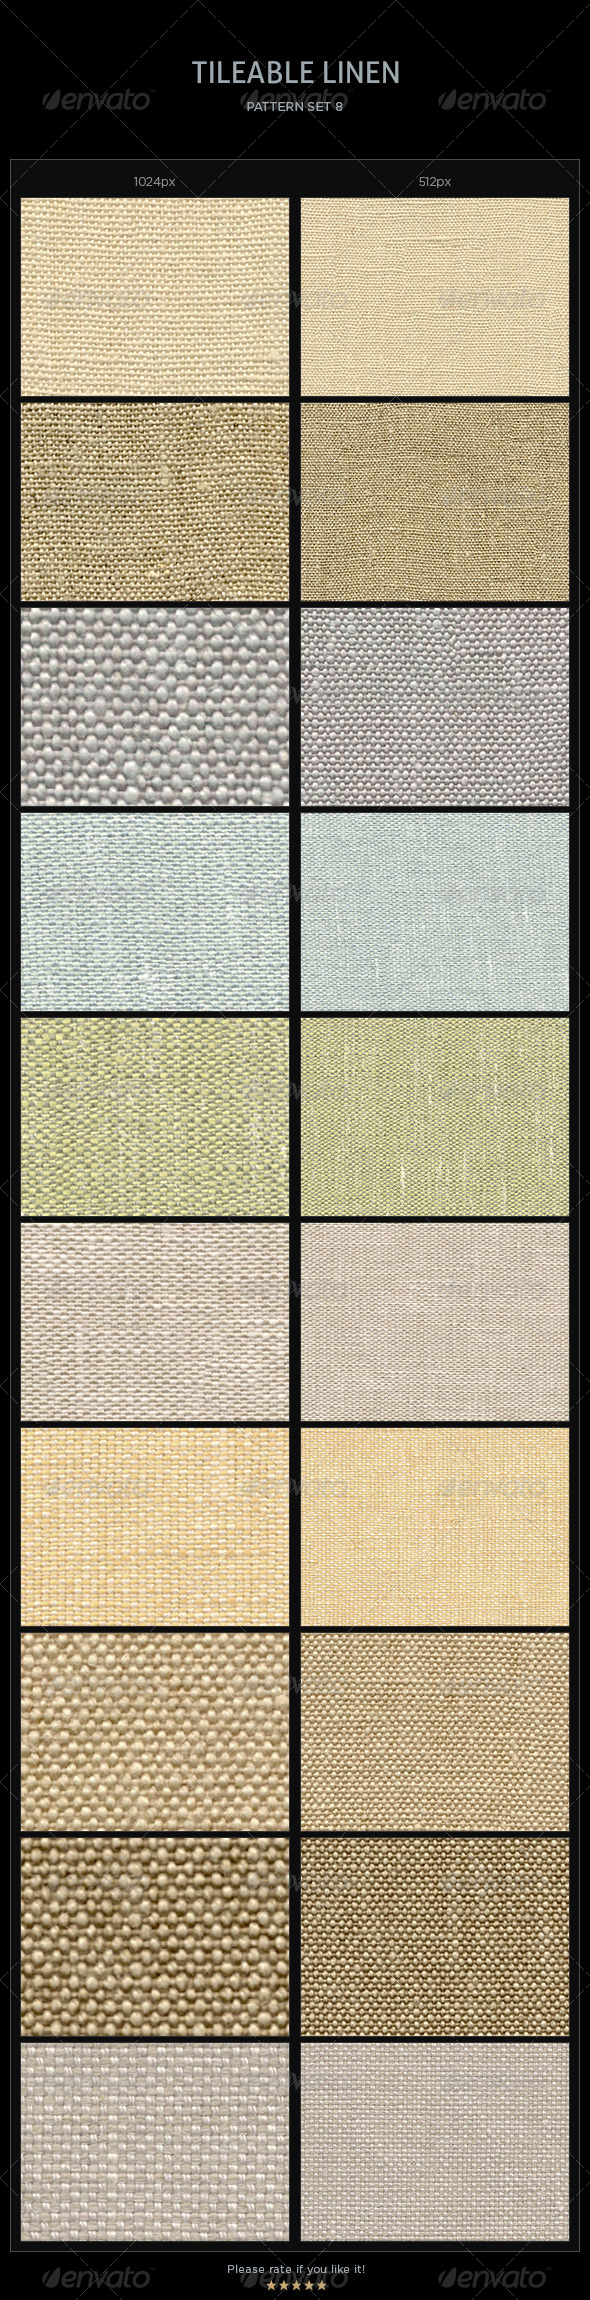 10 Tileable Linen Textures/Patterns - Miscellaneous Textures / Fills / Patterns